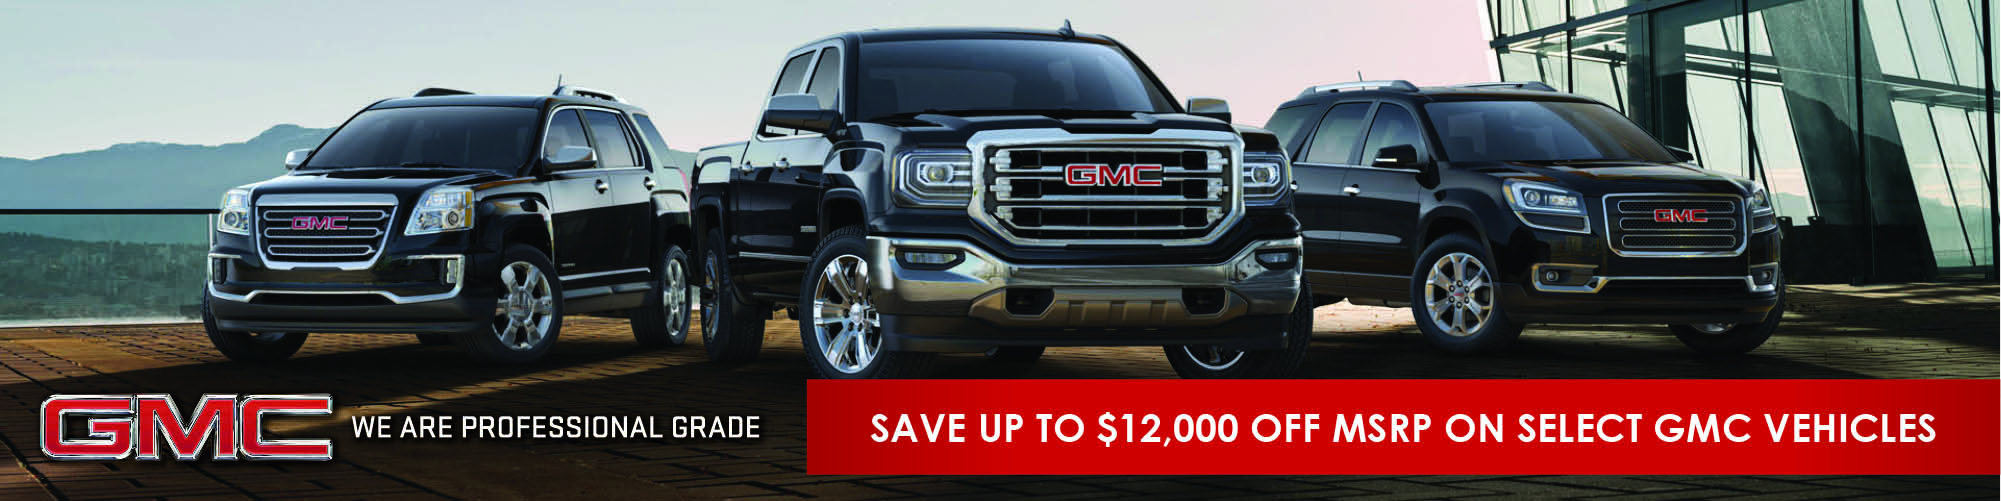 Save Up to $12,000 off MSRP on Select GMC Vehicles